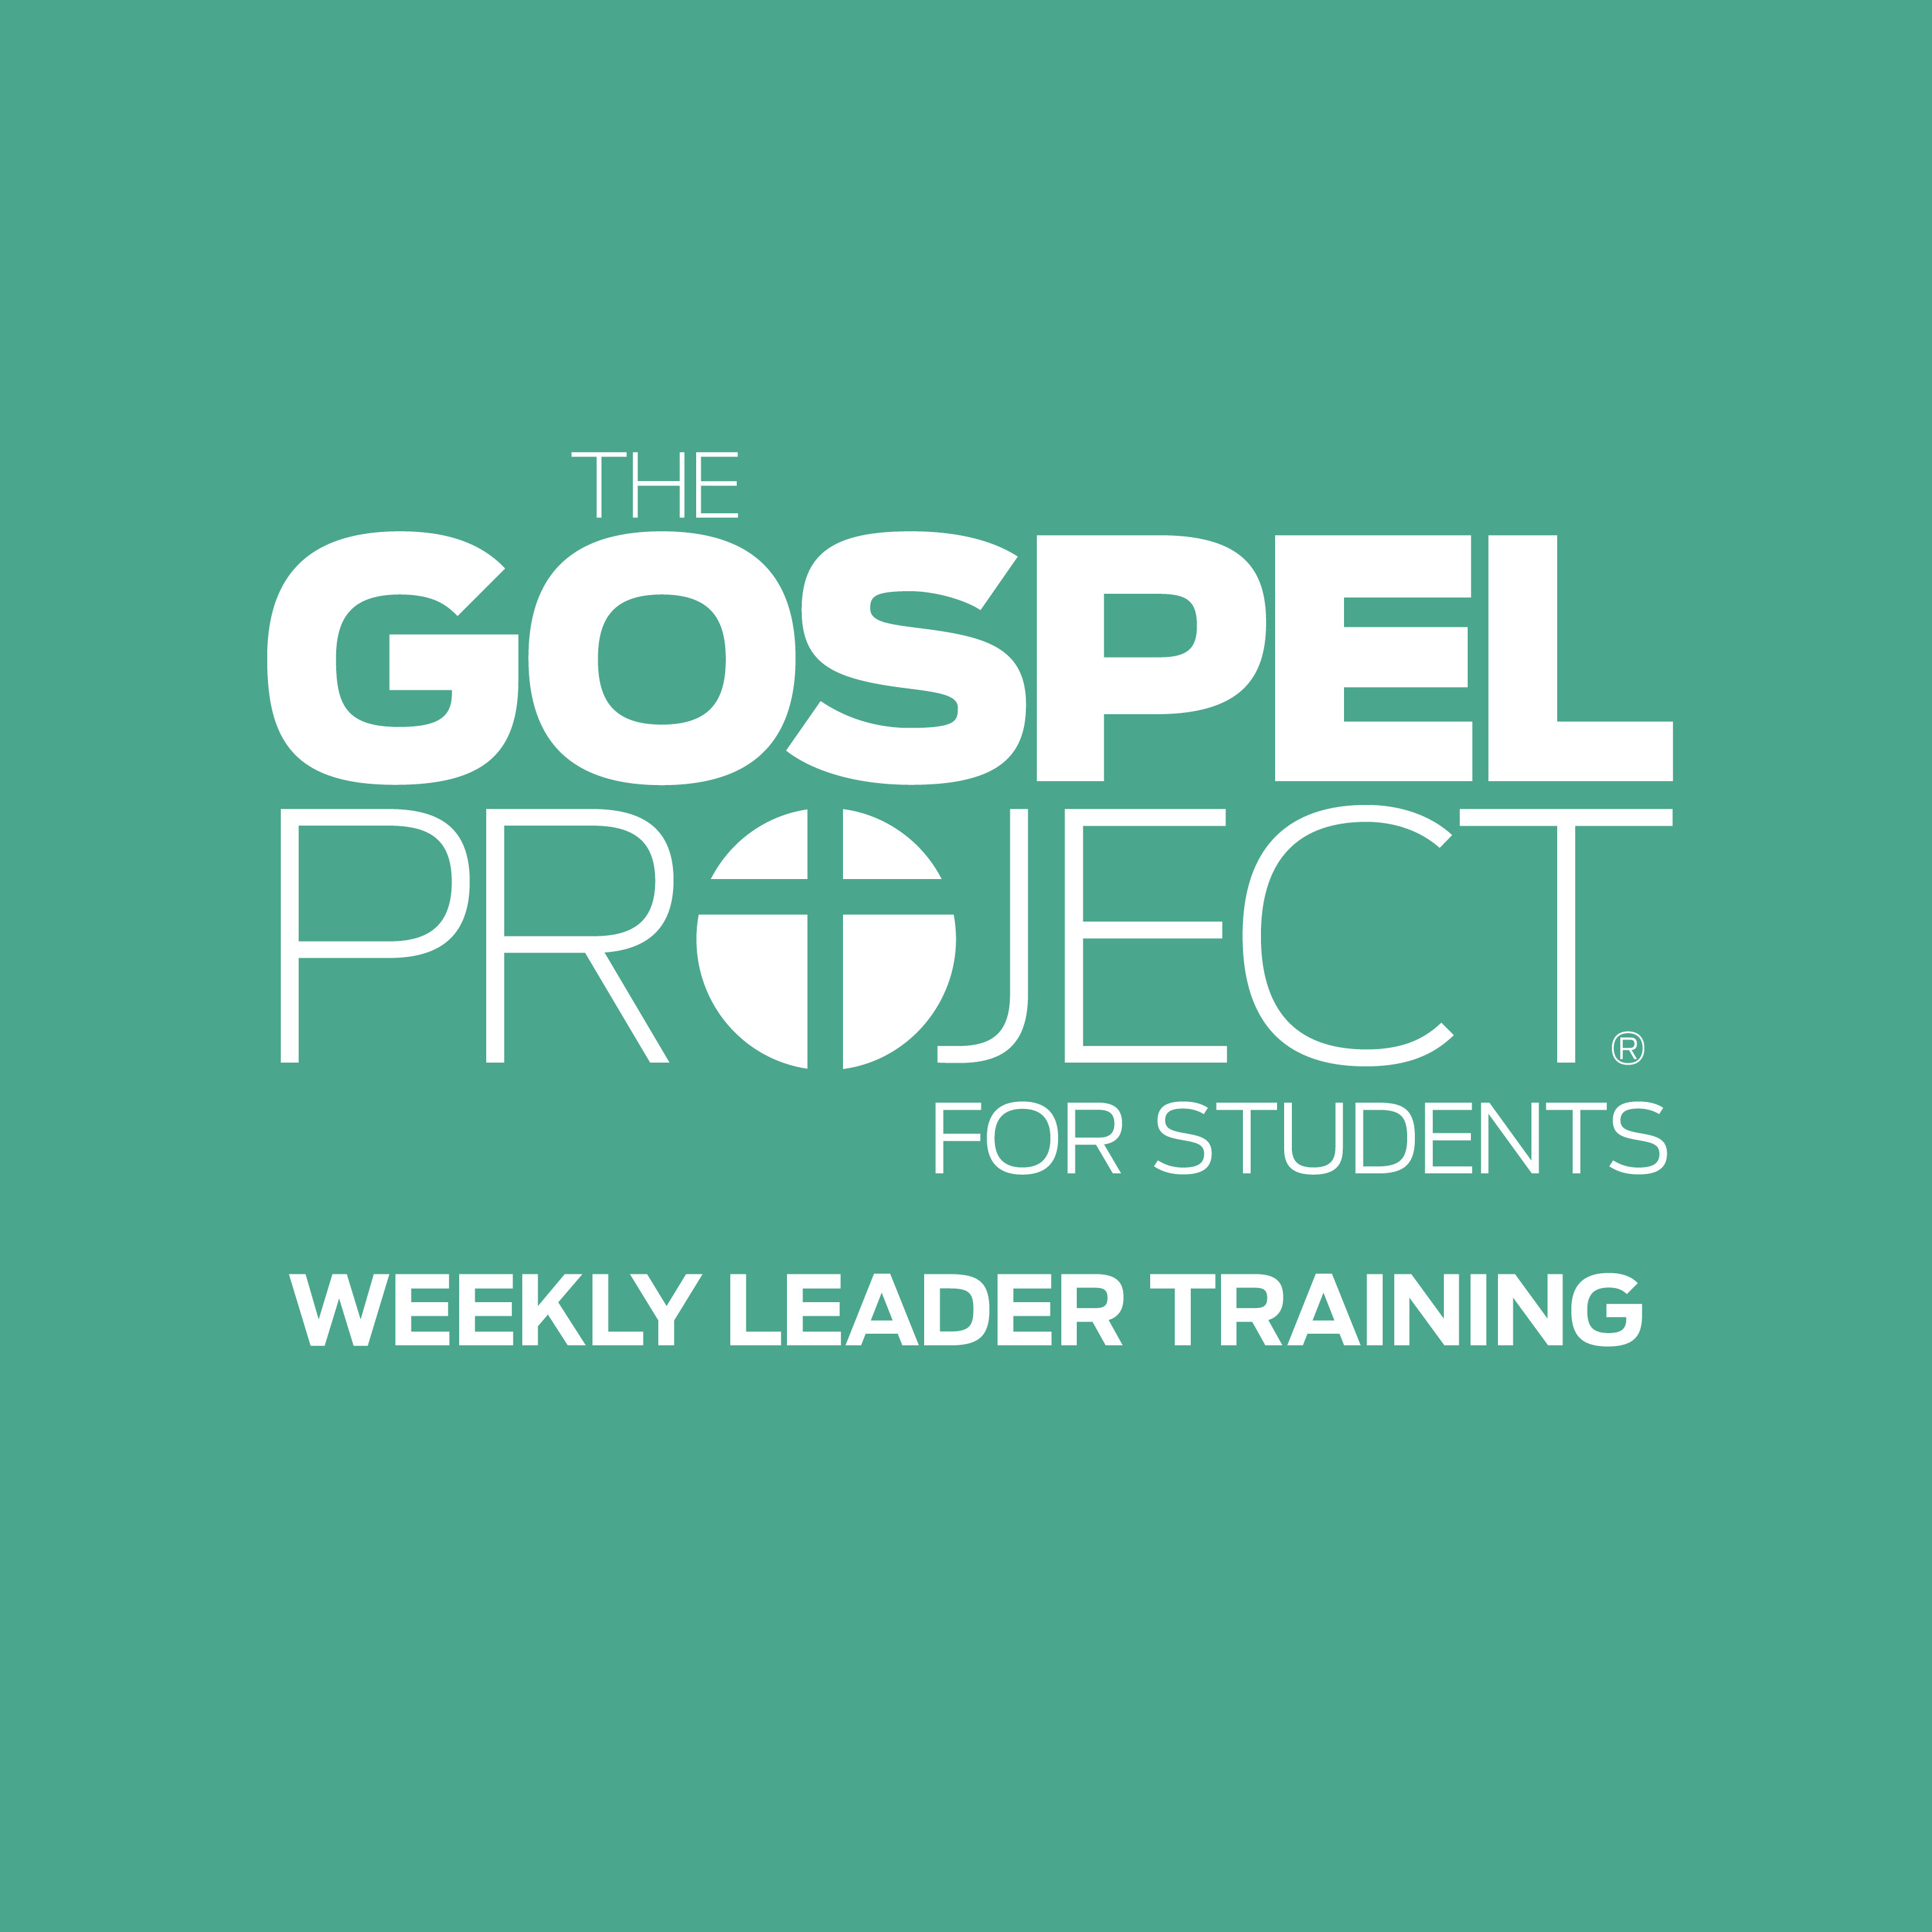 The Gospel Project for Students Weekly Leader Training